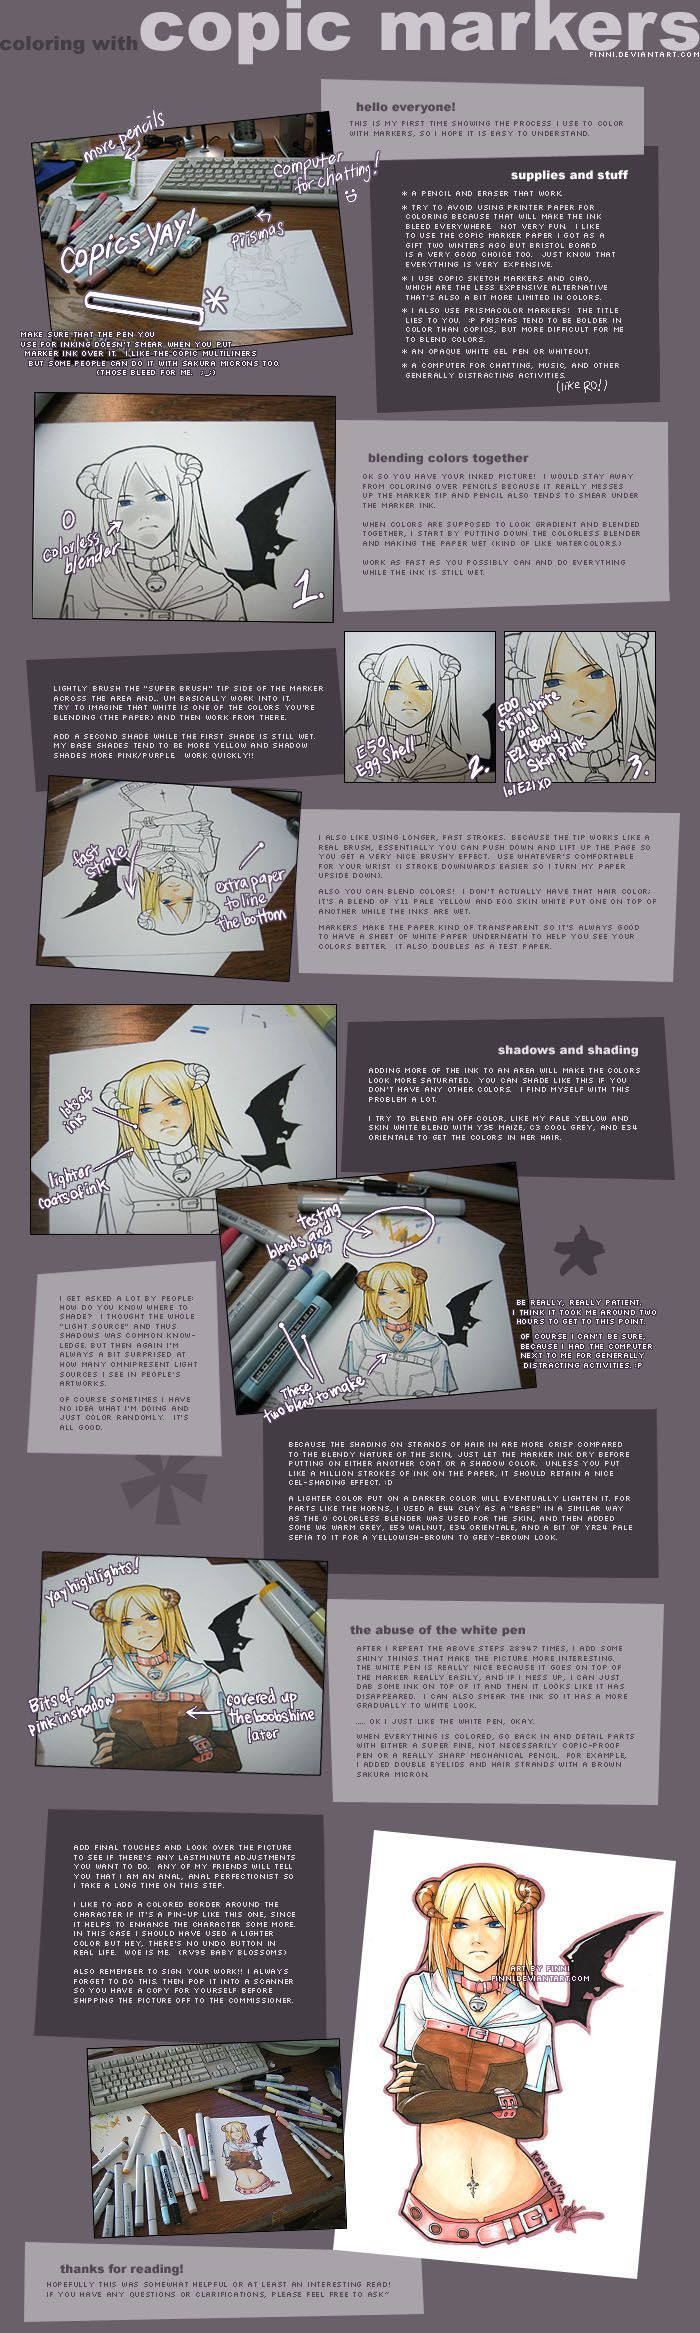 Copic Marker Tutorial by ~finni on deviantART